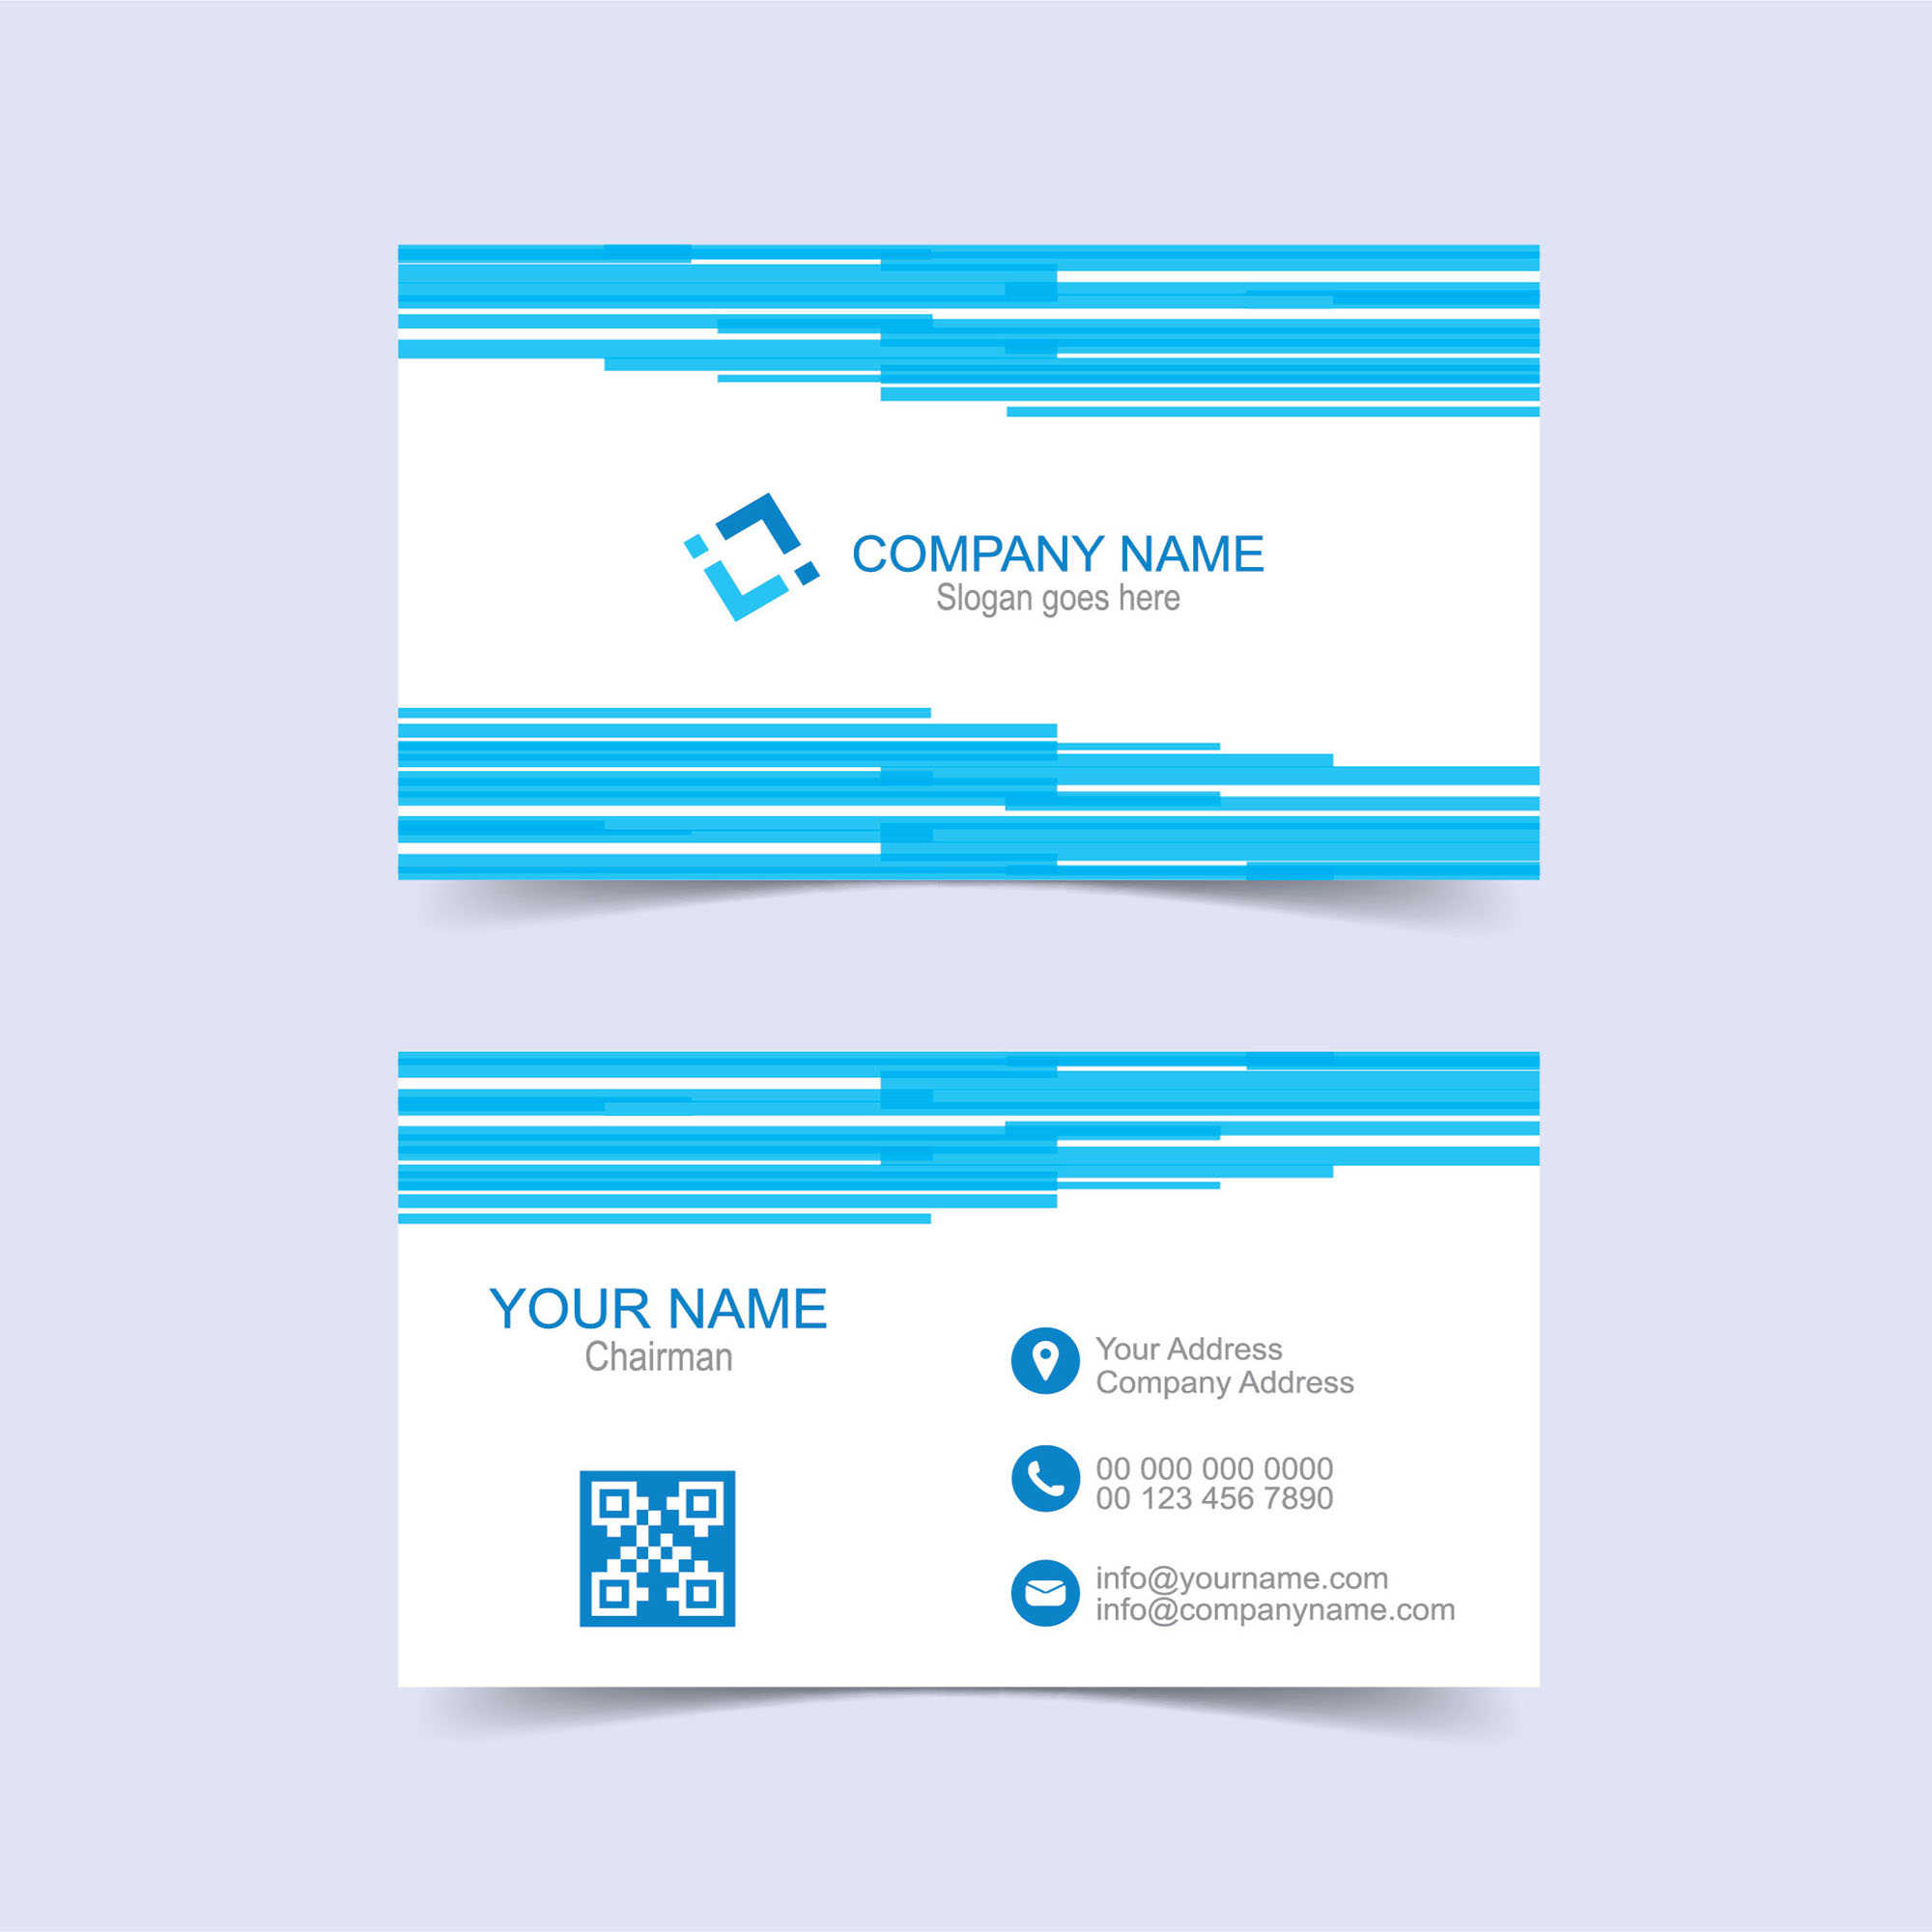 Technology business card template free download wisxi business card business cards business card design business card template design templates reheart Gallery